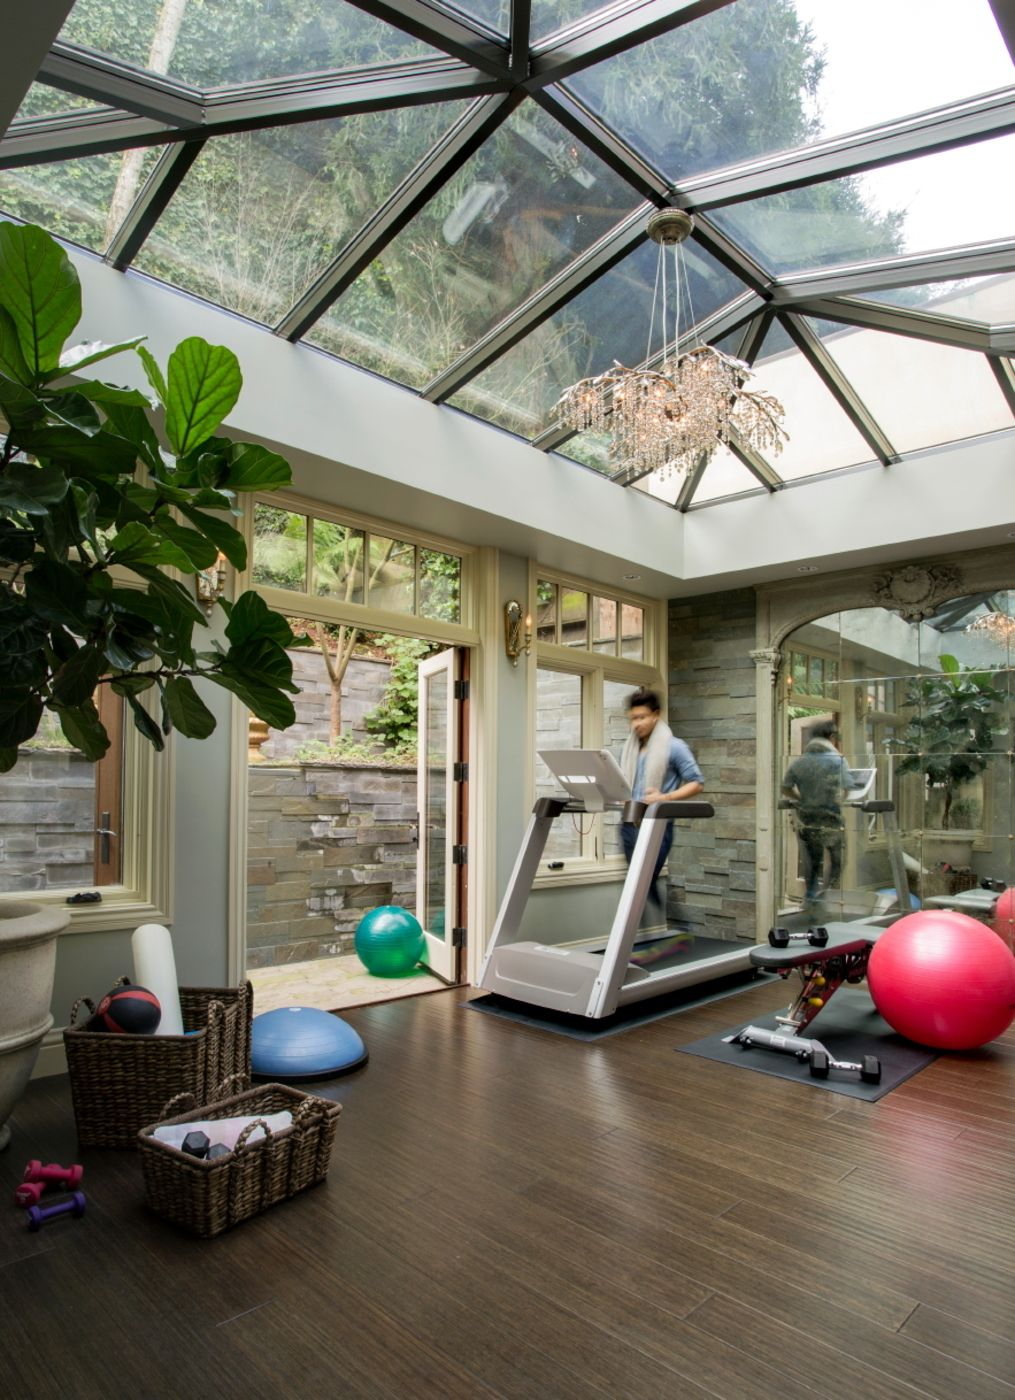 Home gym and solarium in pacific heights estate by favreau